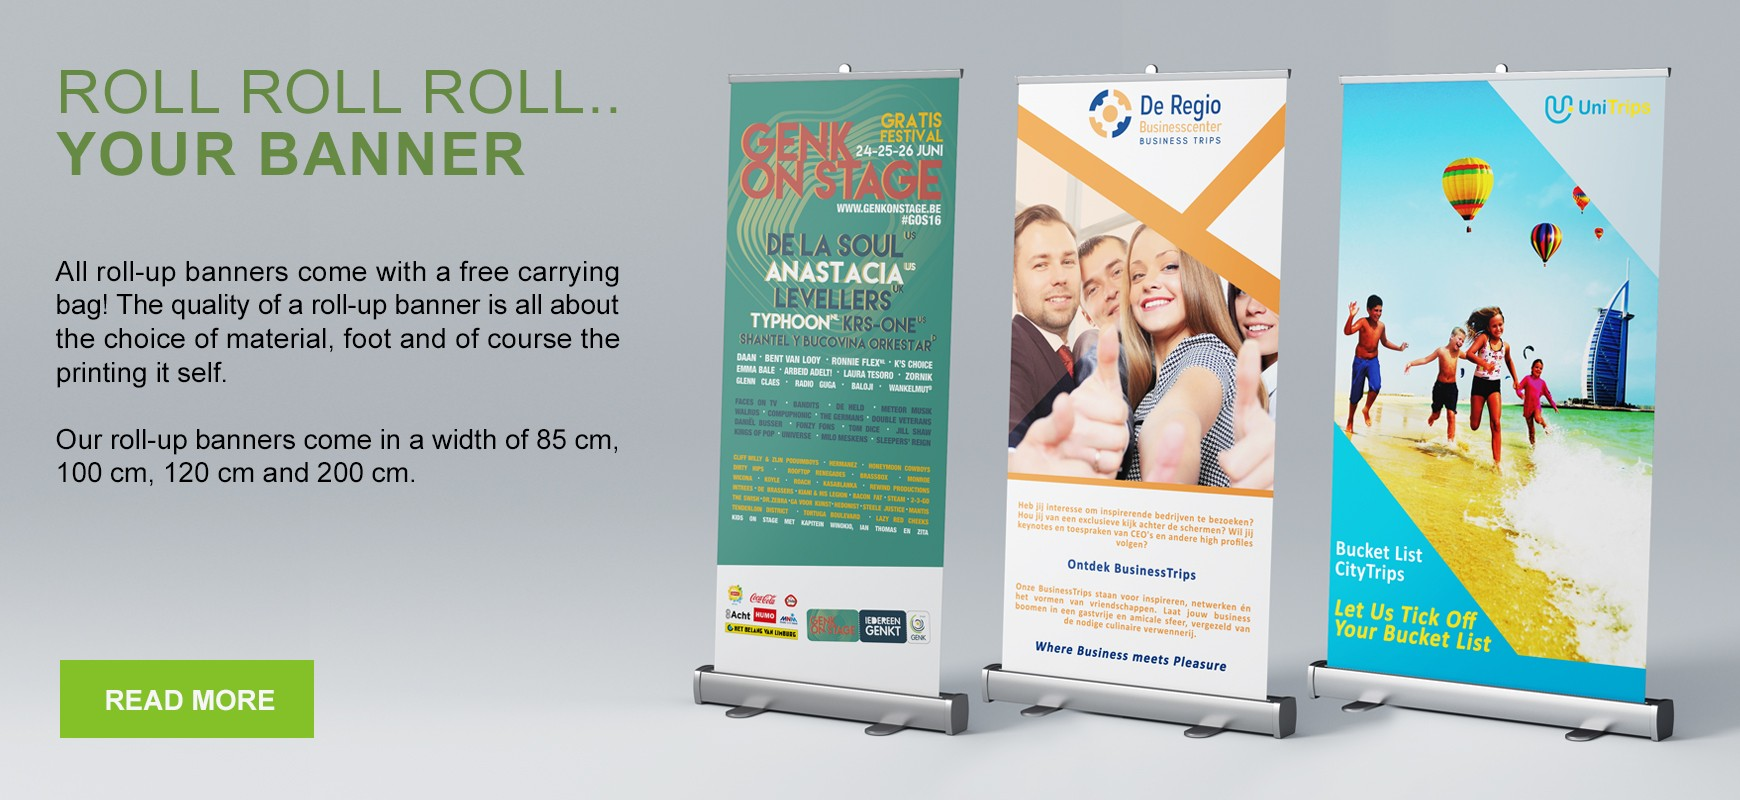 Order your roll-up banner now